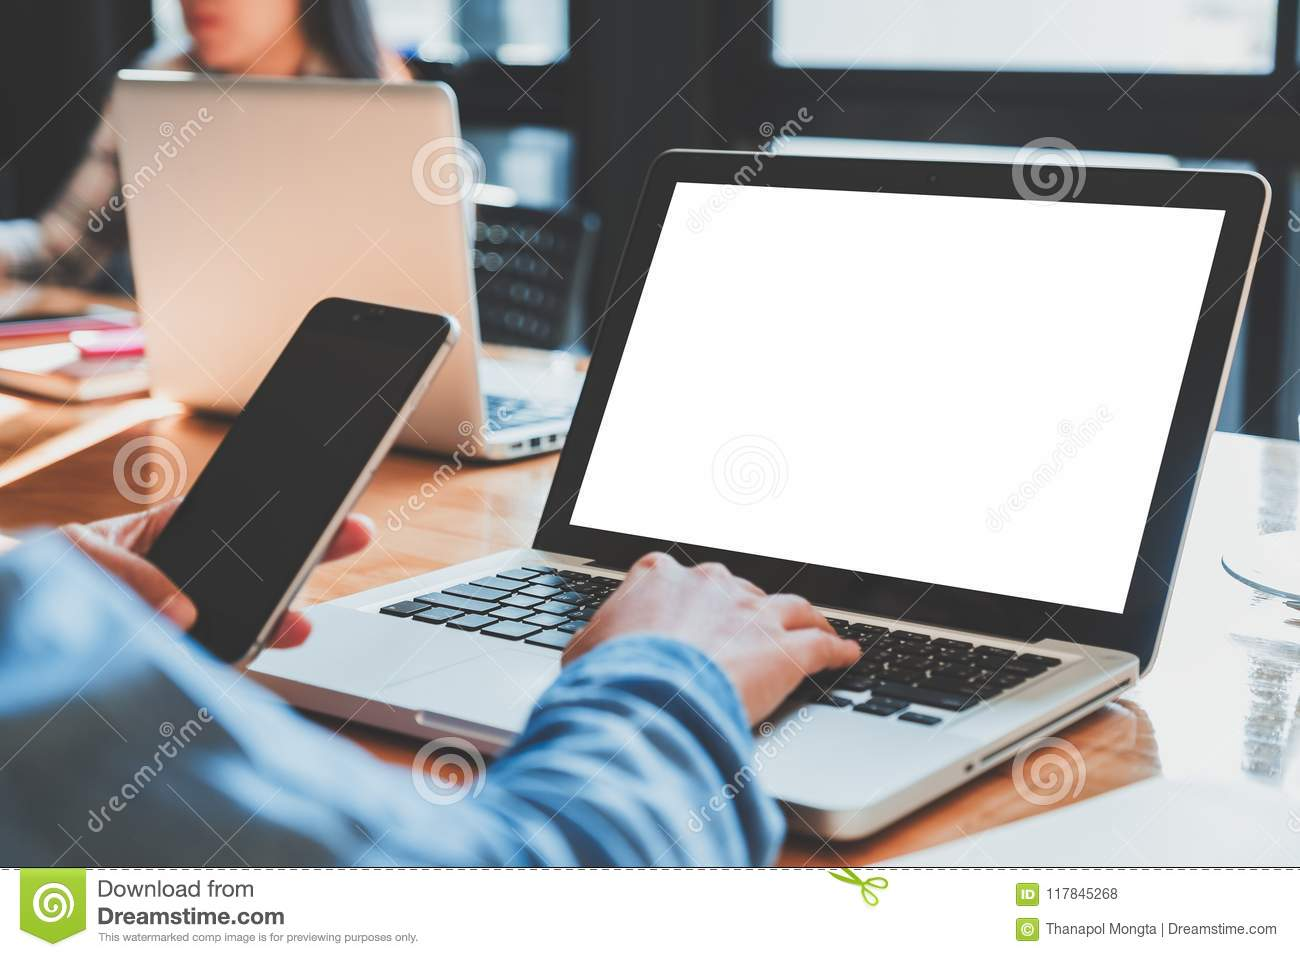 Woman Hands Typing On Laptop Keyboard With White Blank